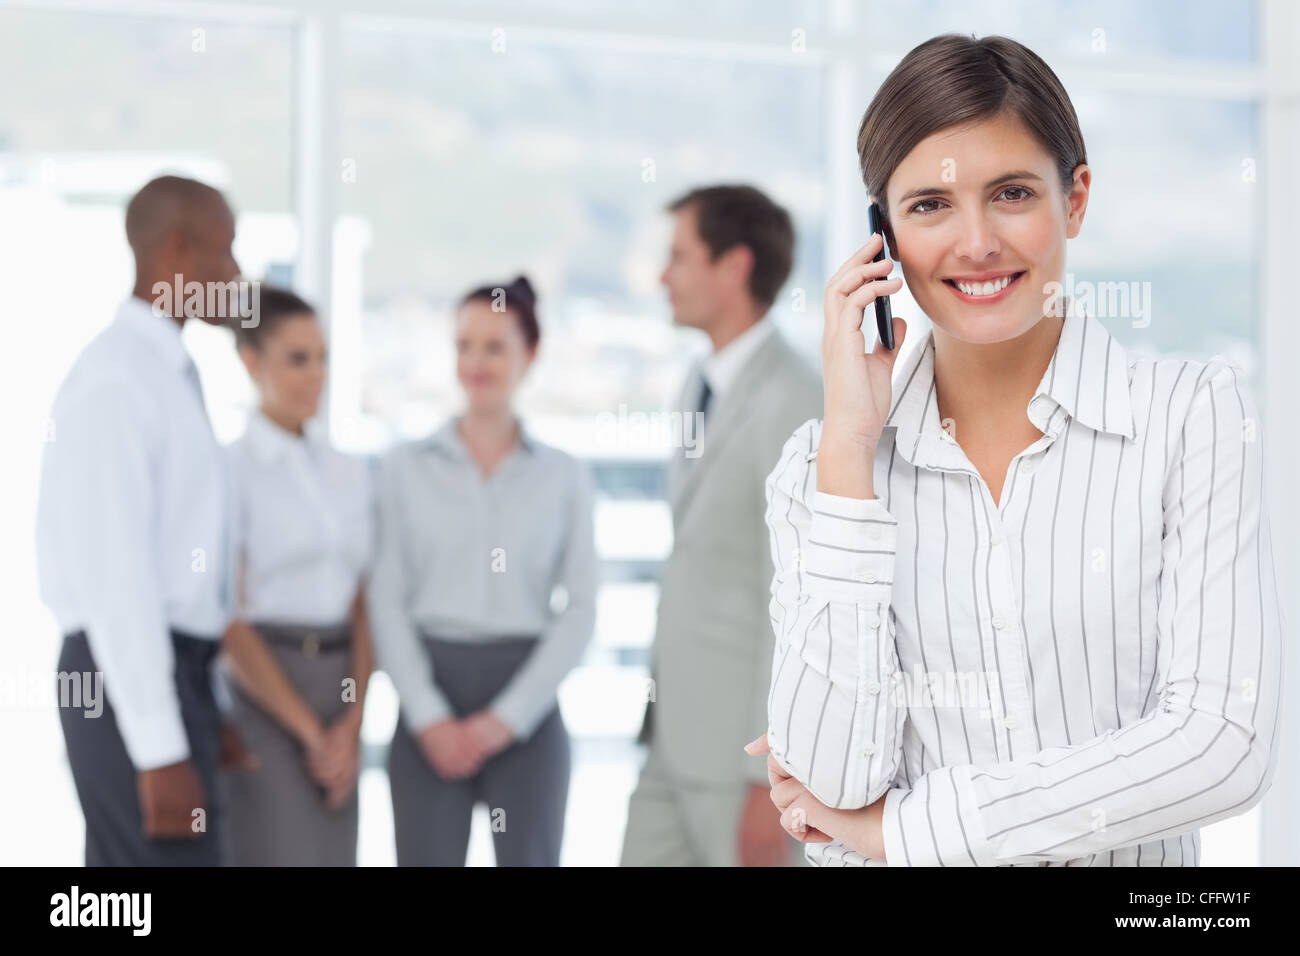 Smiling saleswoman on her mobile phone with associates behind her - Stock Image